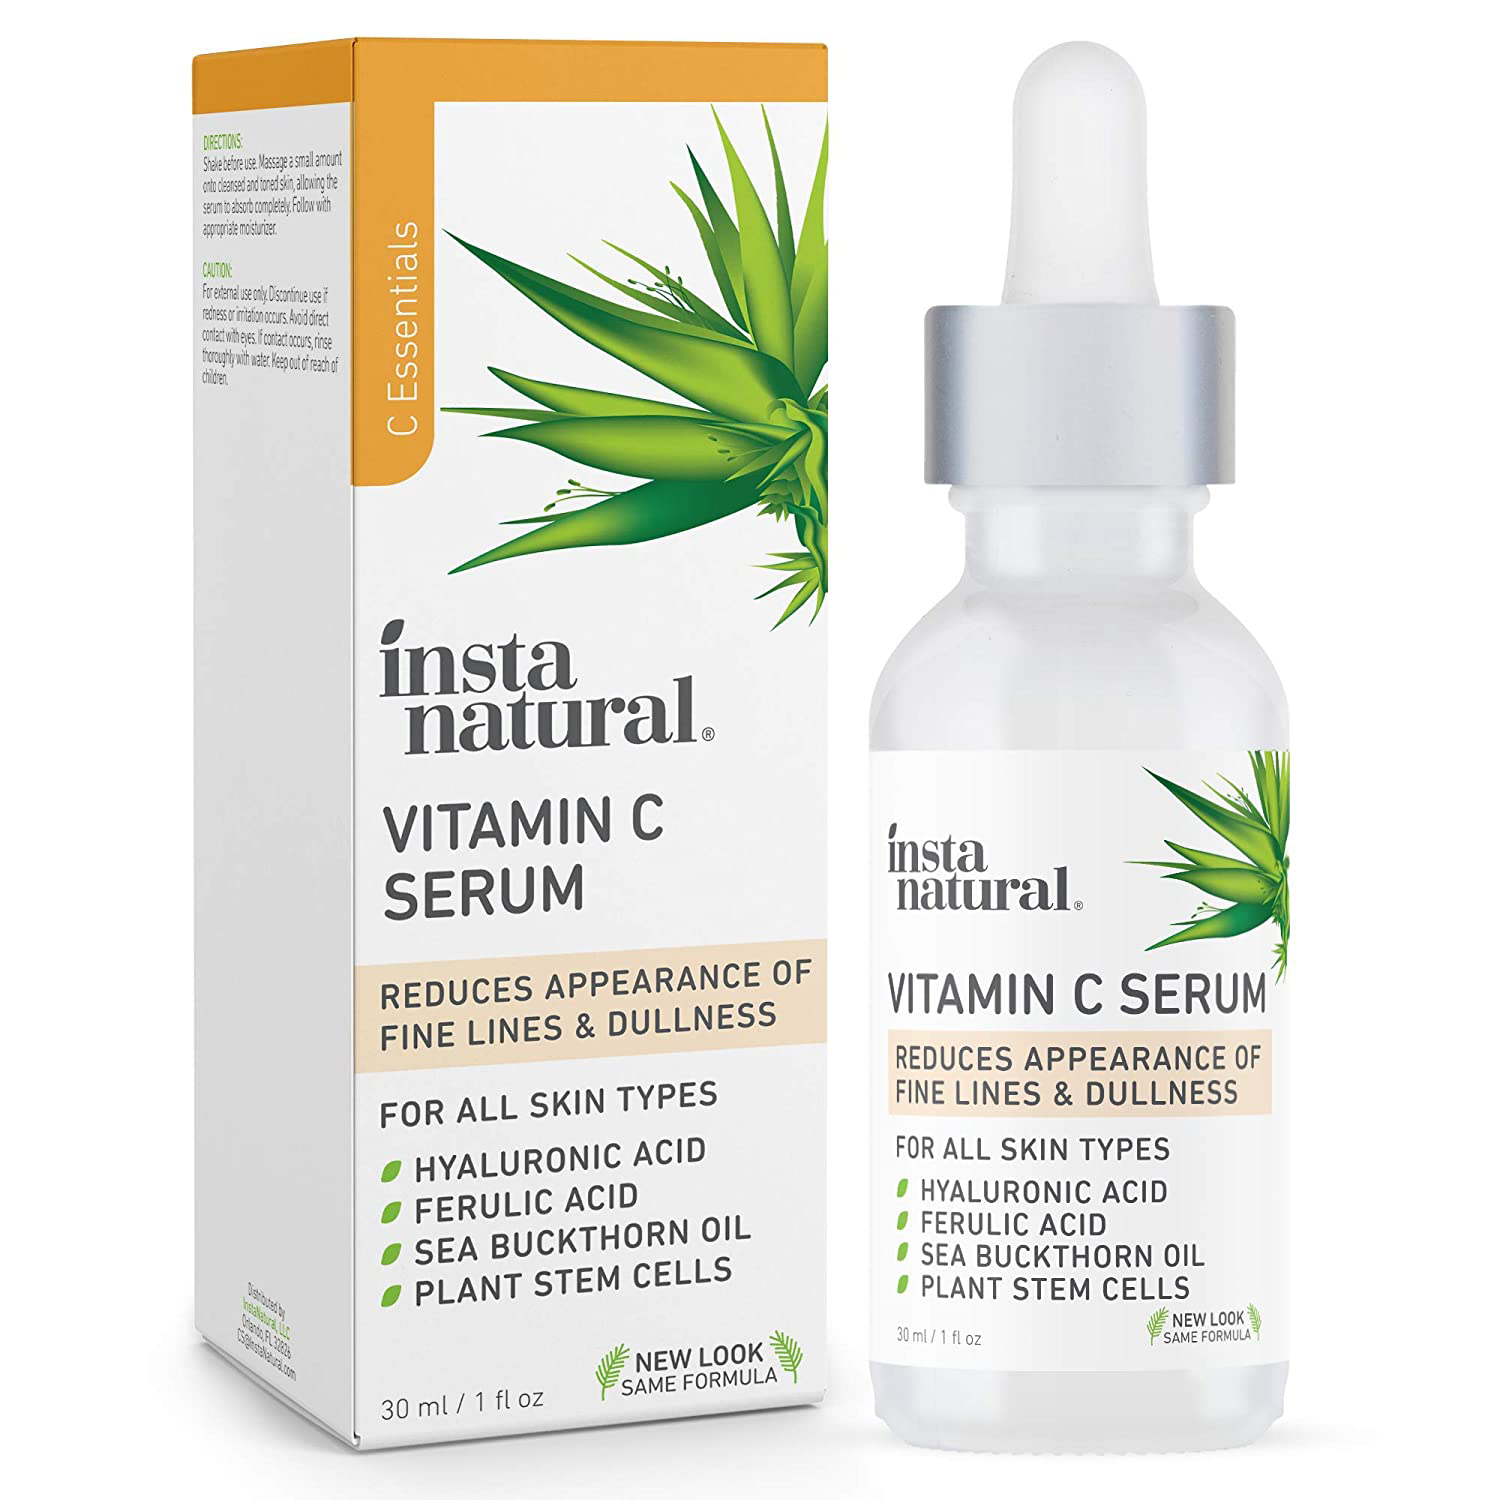 InstaNatural Vitamin C Serum